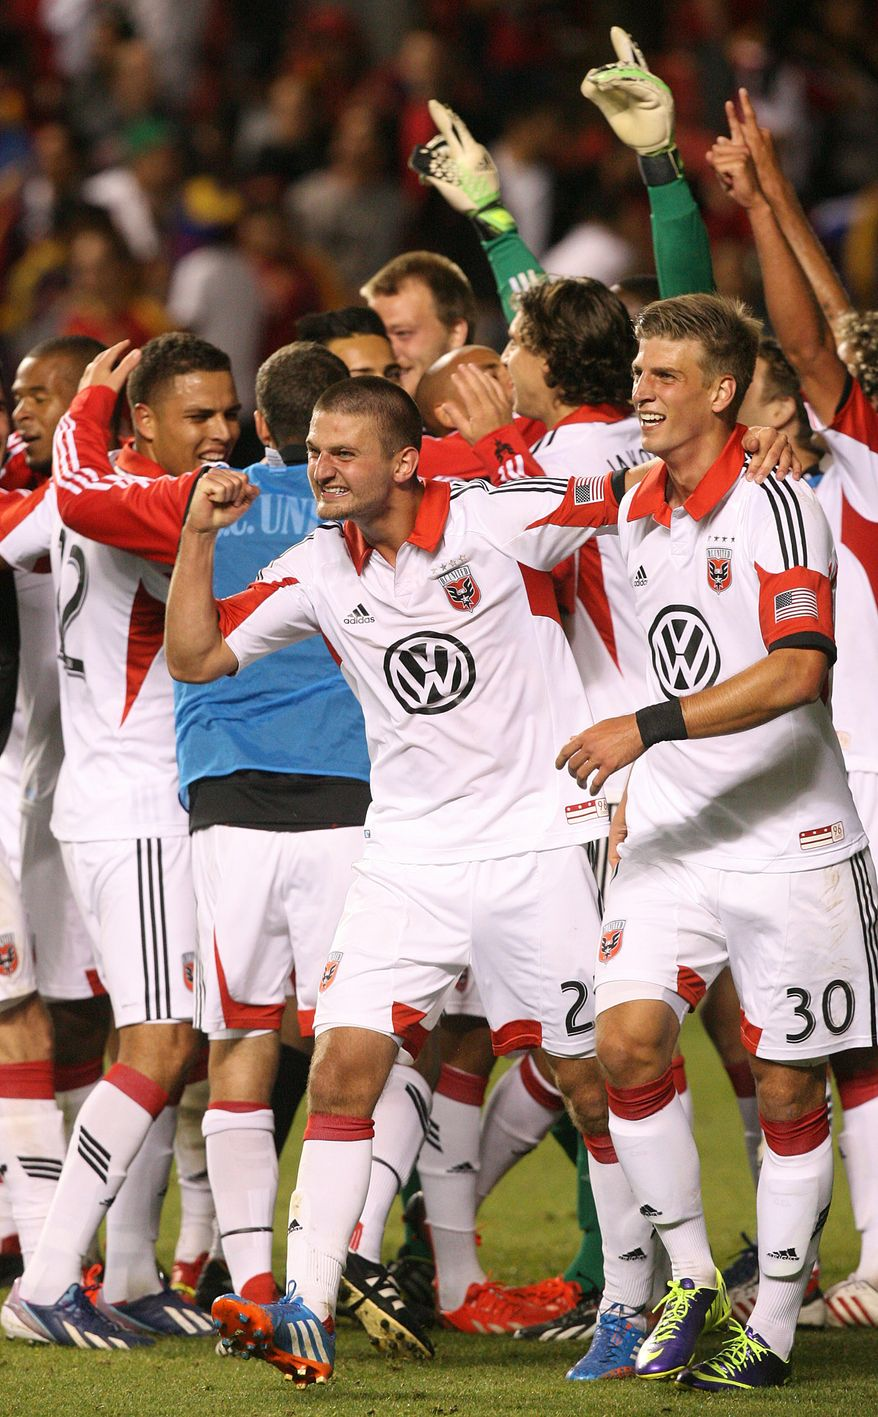 D.C. United celebrates the win as Real Salt Lake lost the 2013 U.S. Open Cup Final to D.C. United 1-0 at Rio Tinto Stadium in Sandy, Utah, Tuesday, October 1, 2013. The winner will play in the CONCACAF Champions League. (AP Photo/The Salt Lake Tribune, Leah Hogsten)